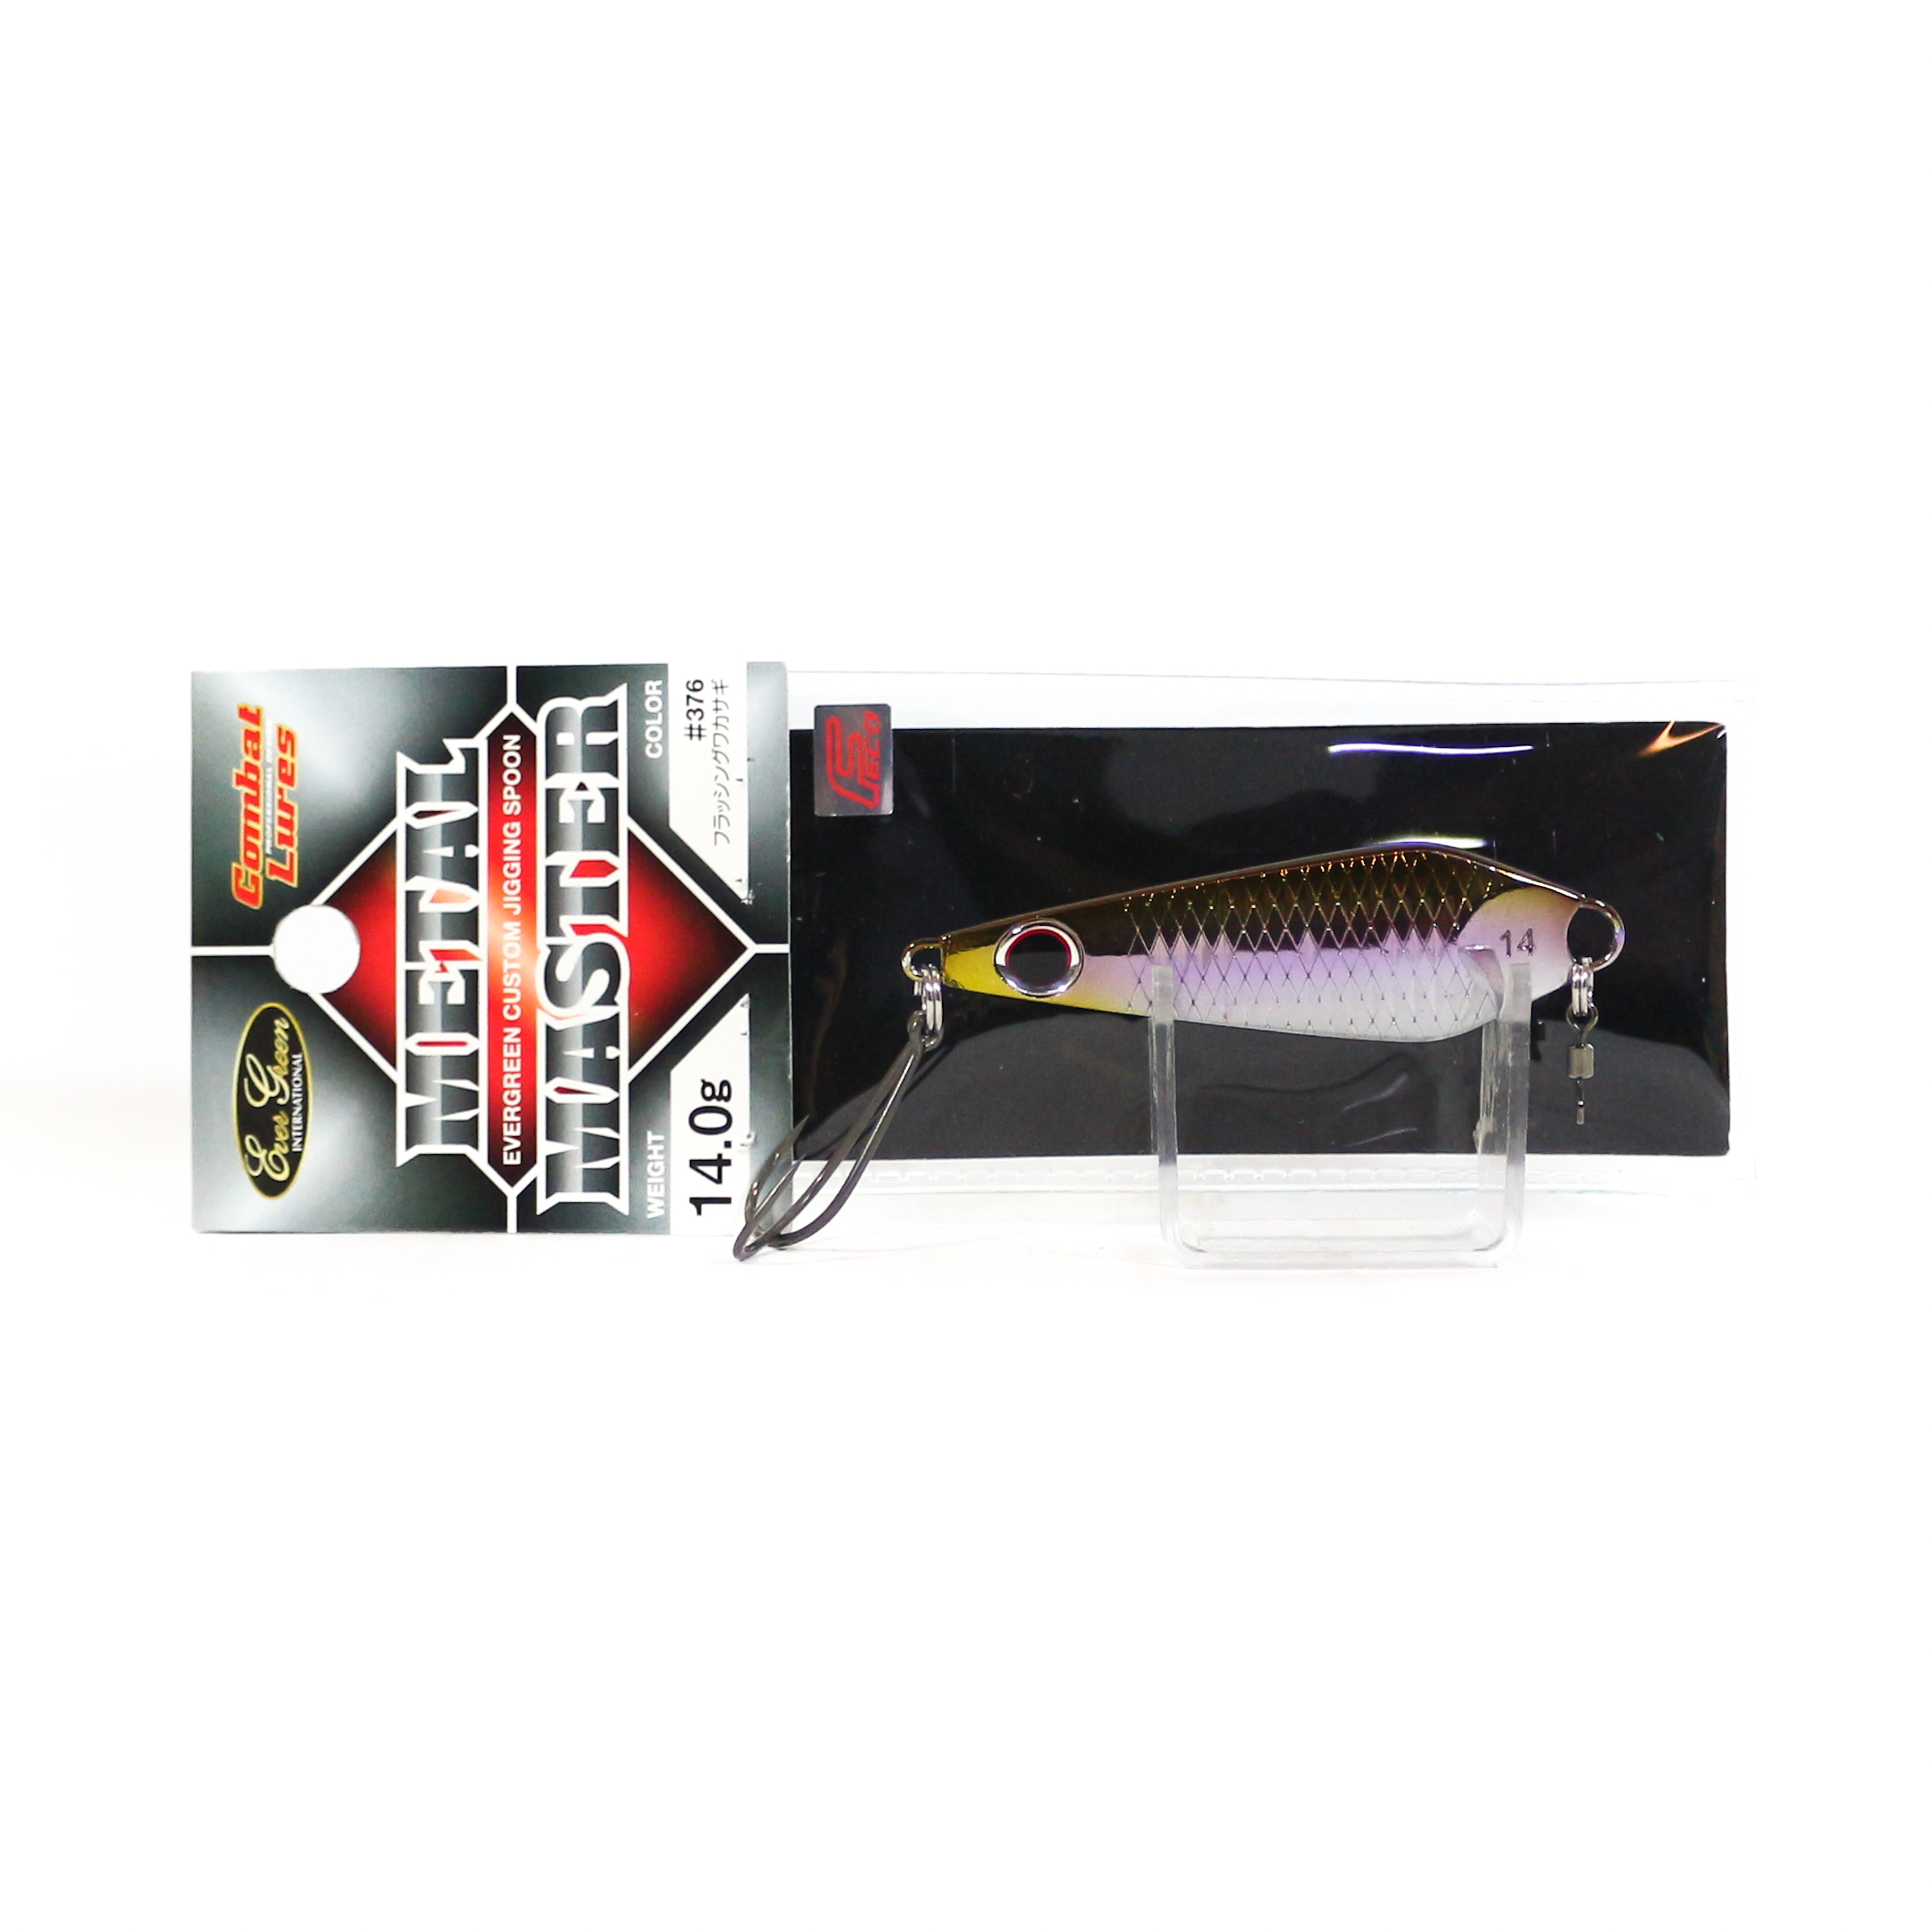 Evergreen Metal Master Custom Jigging Spoon 14 grams 376 (6147)